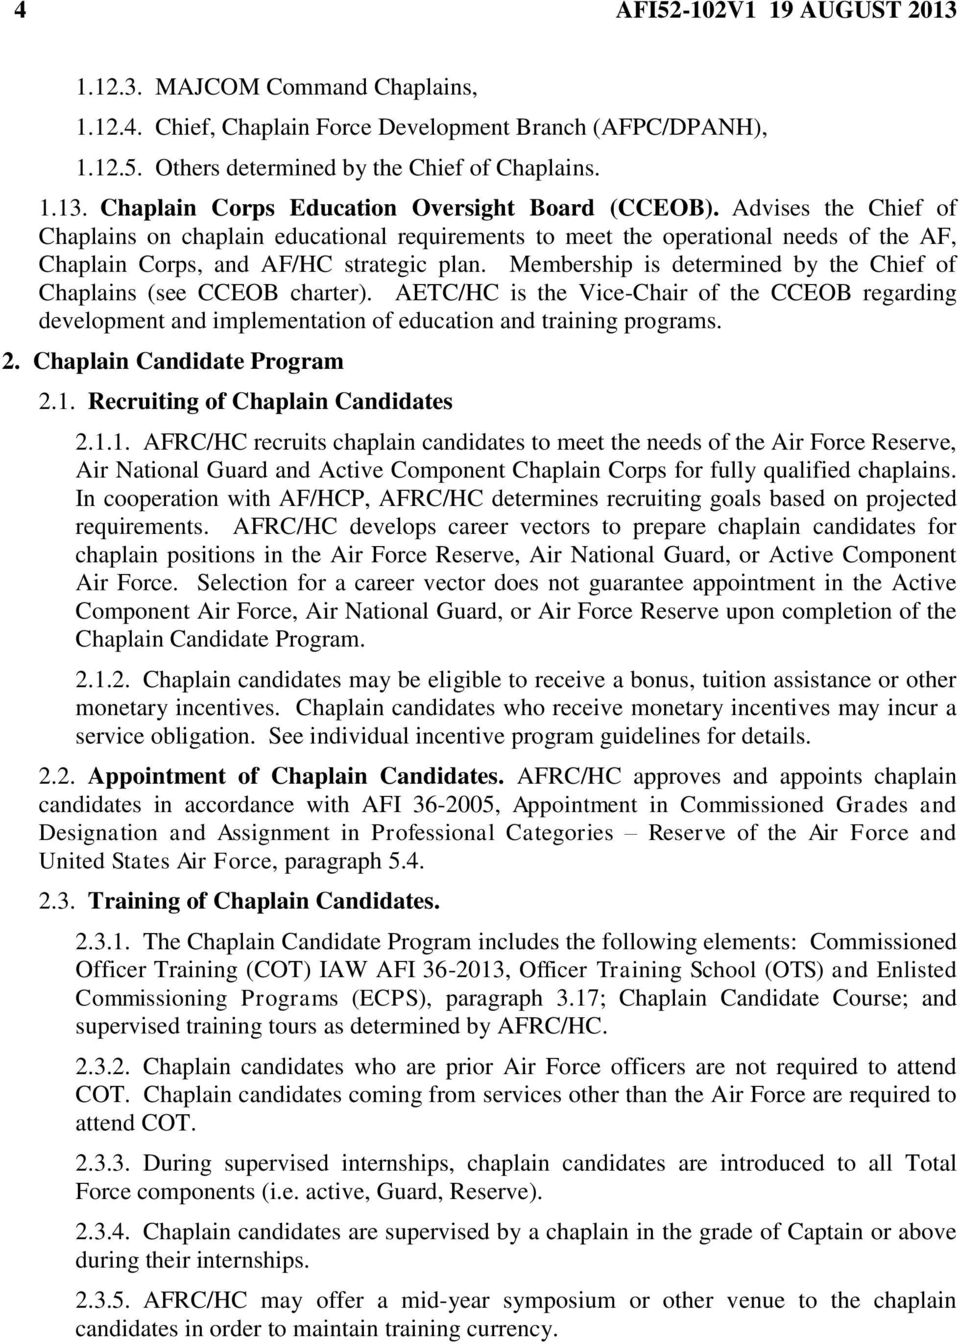 Membership is determined by the Chief of Chaplains (see CCEOB charter). AETC/HC is the Vice-Chair of the CCEOB regarding development and implementation of education and training programs. 2.